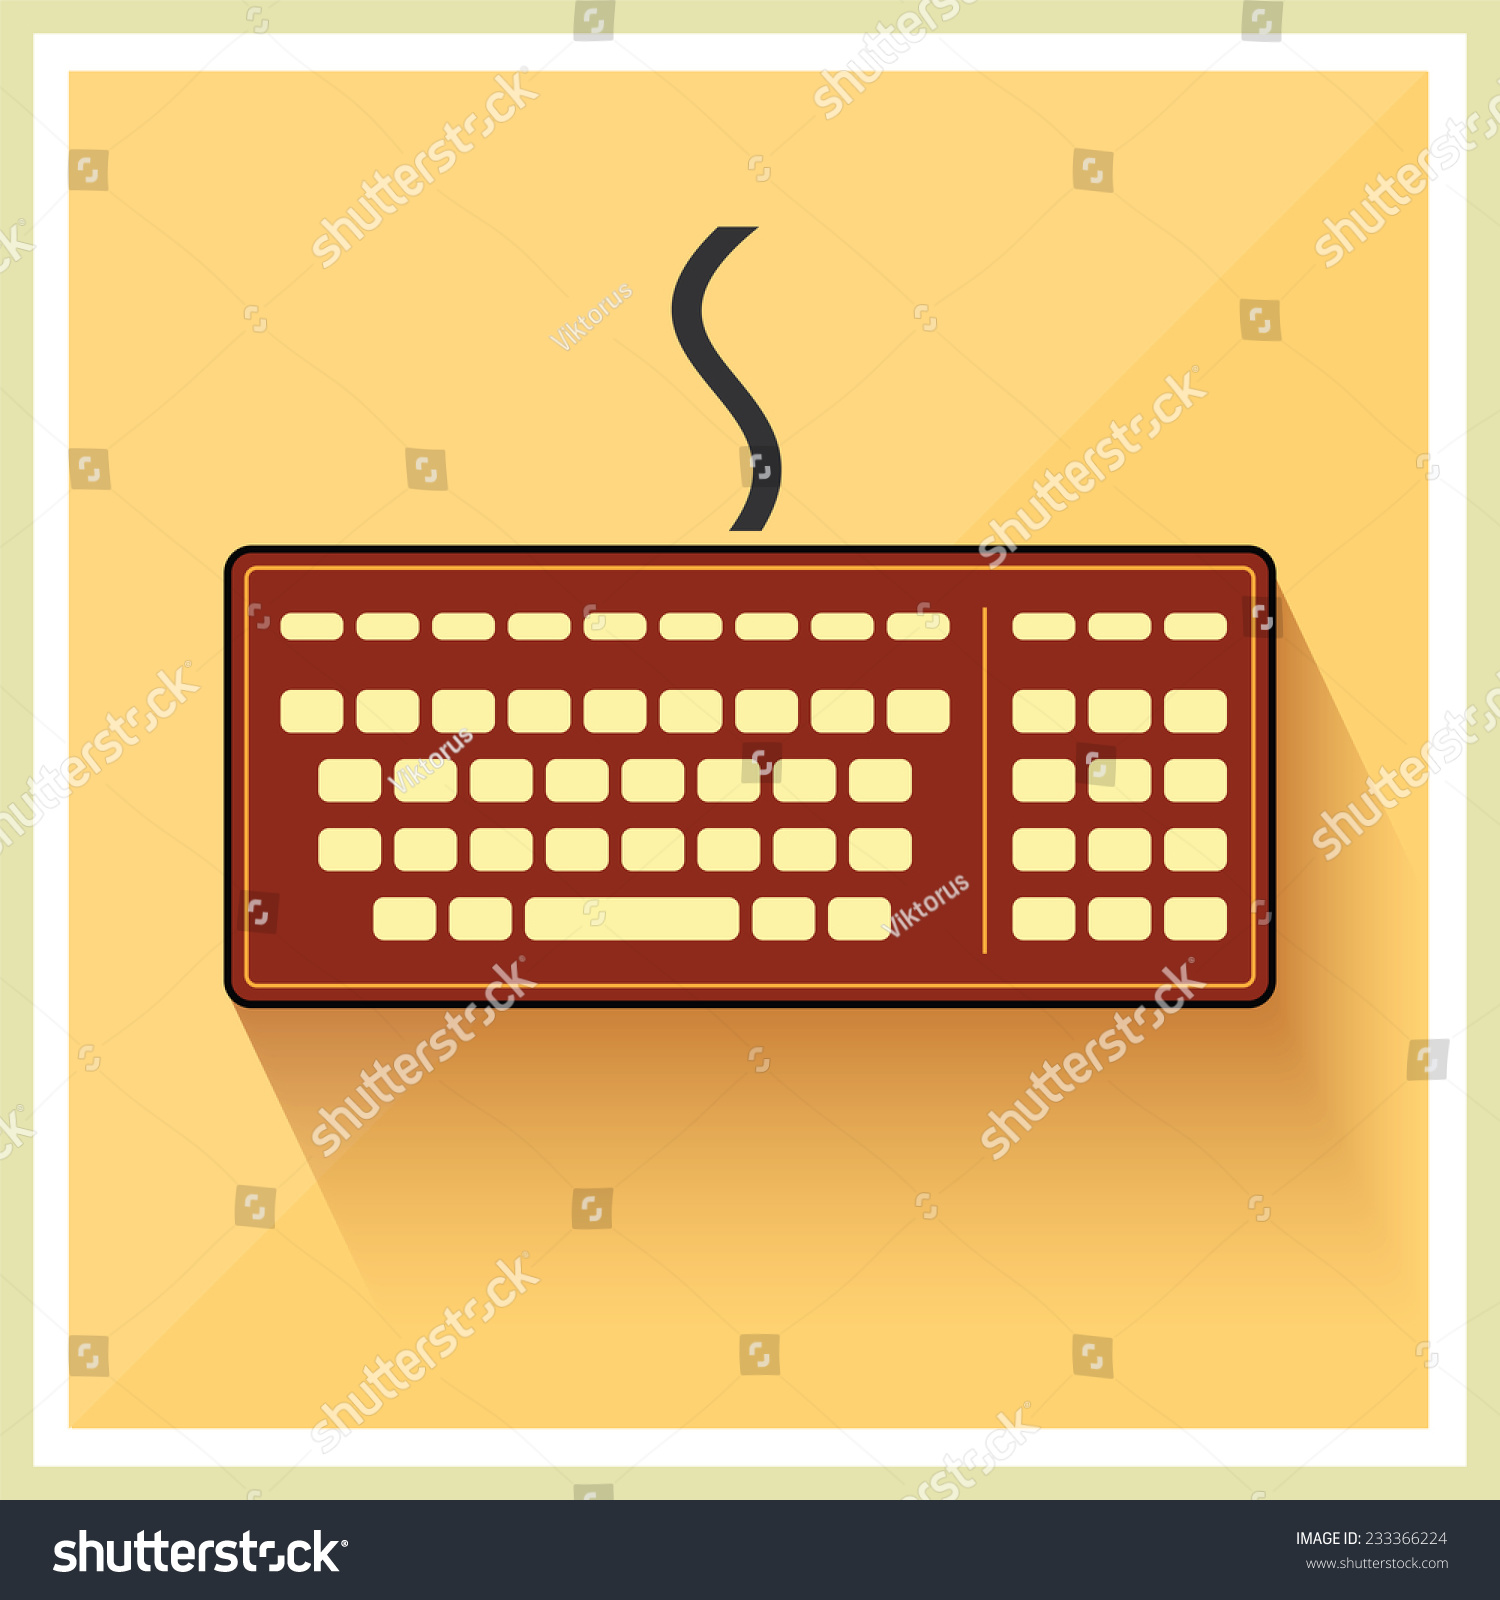 hight resolution of classic computer keyboard on retro background vector